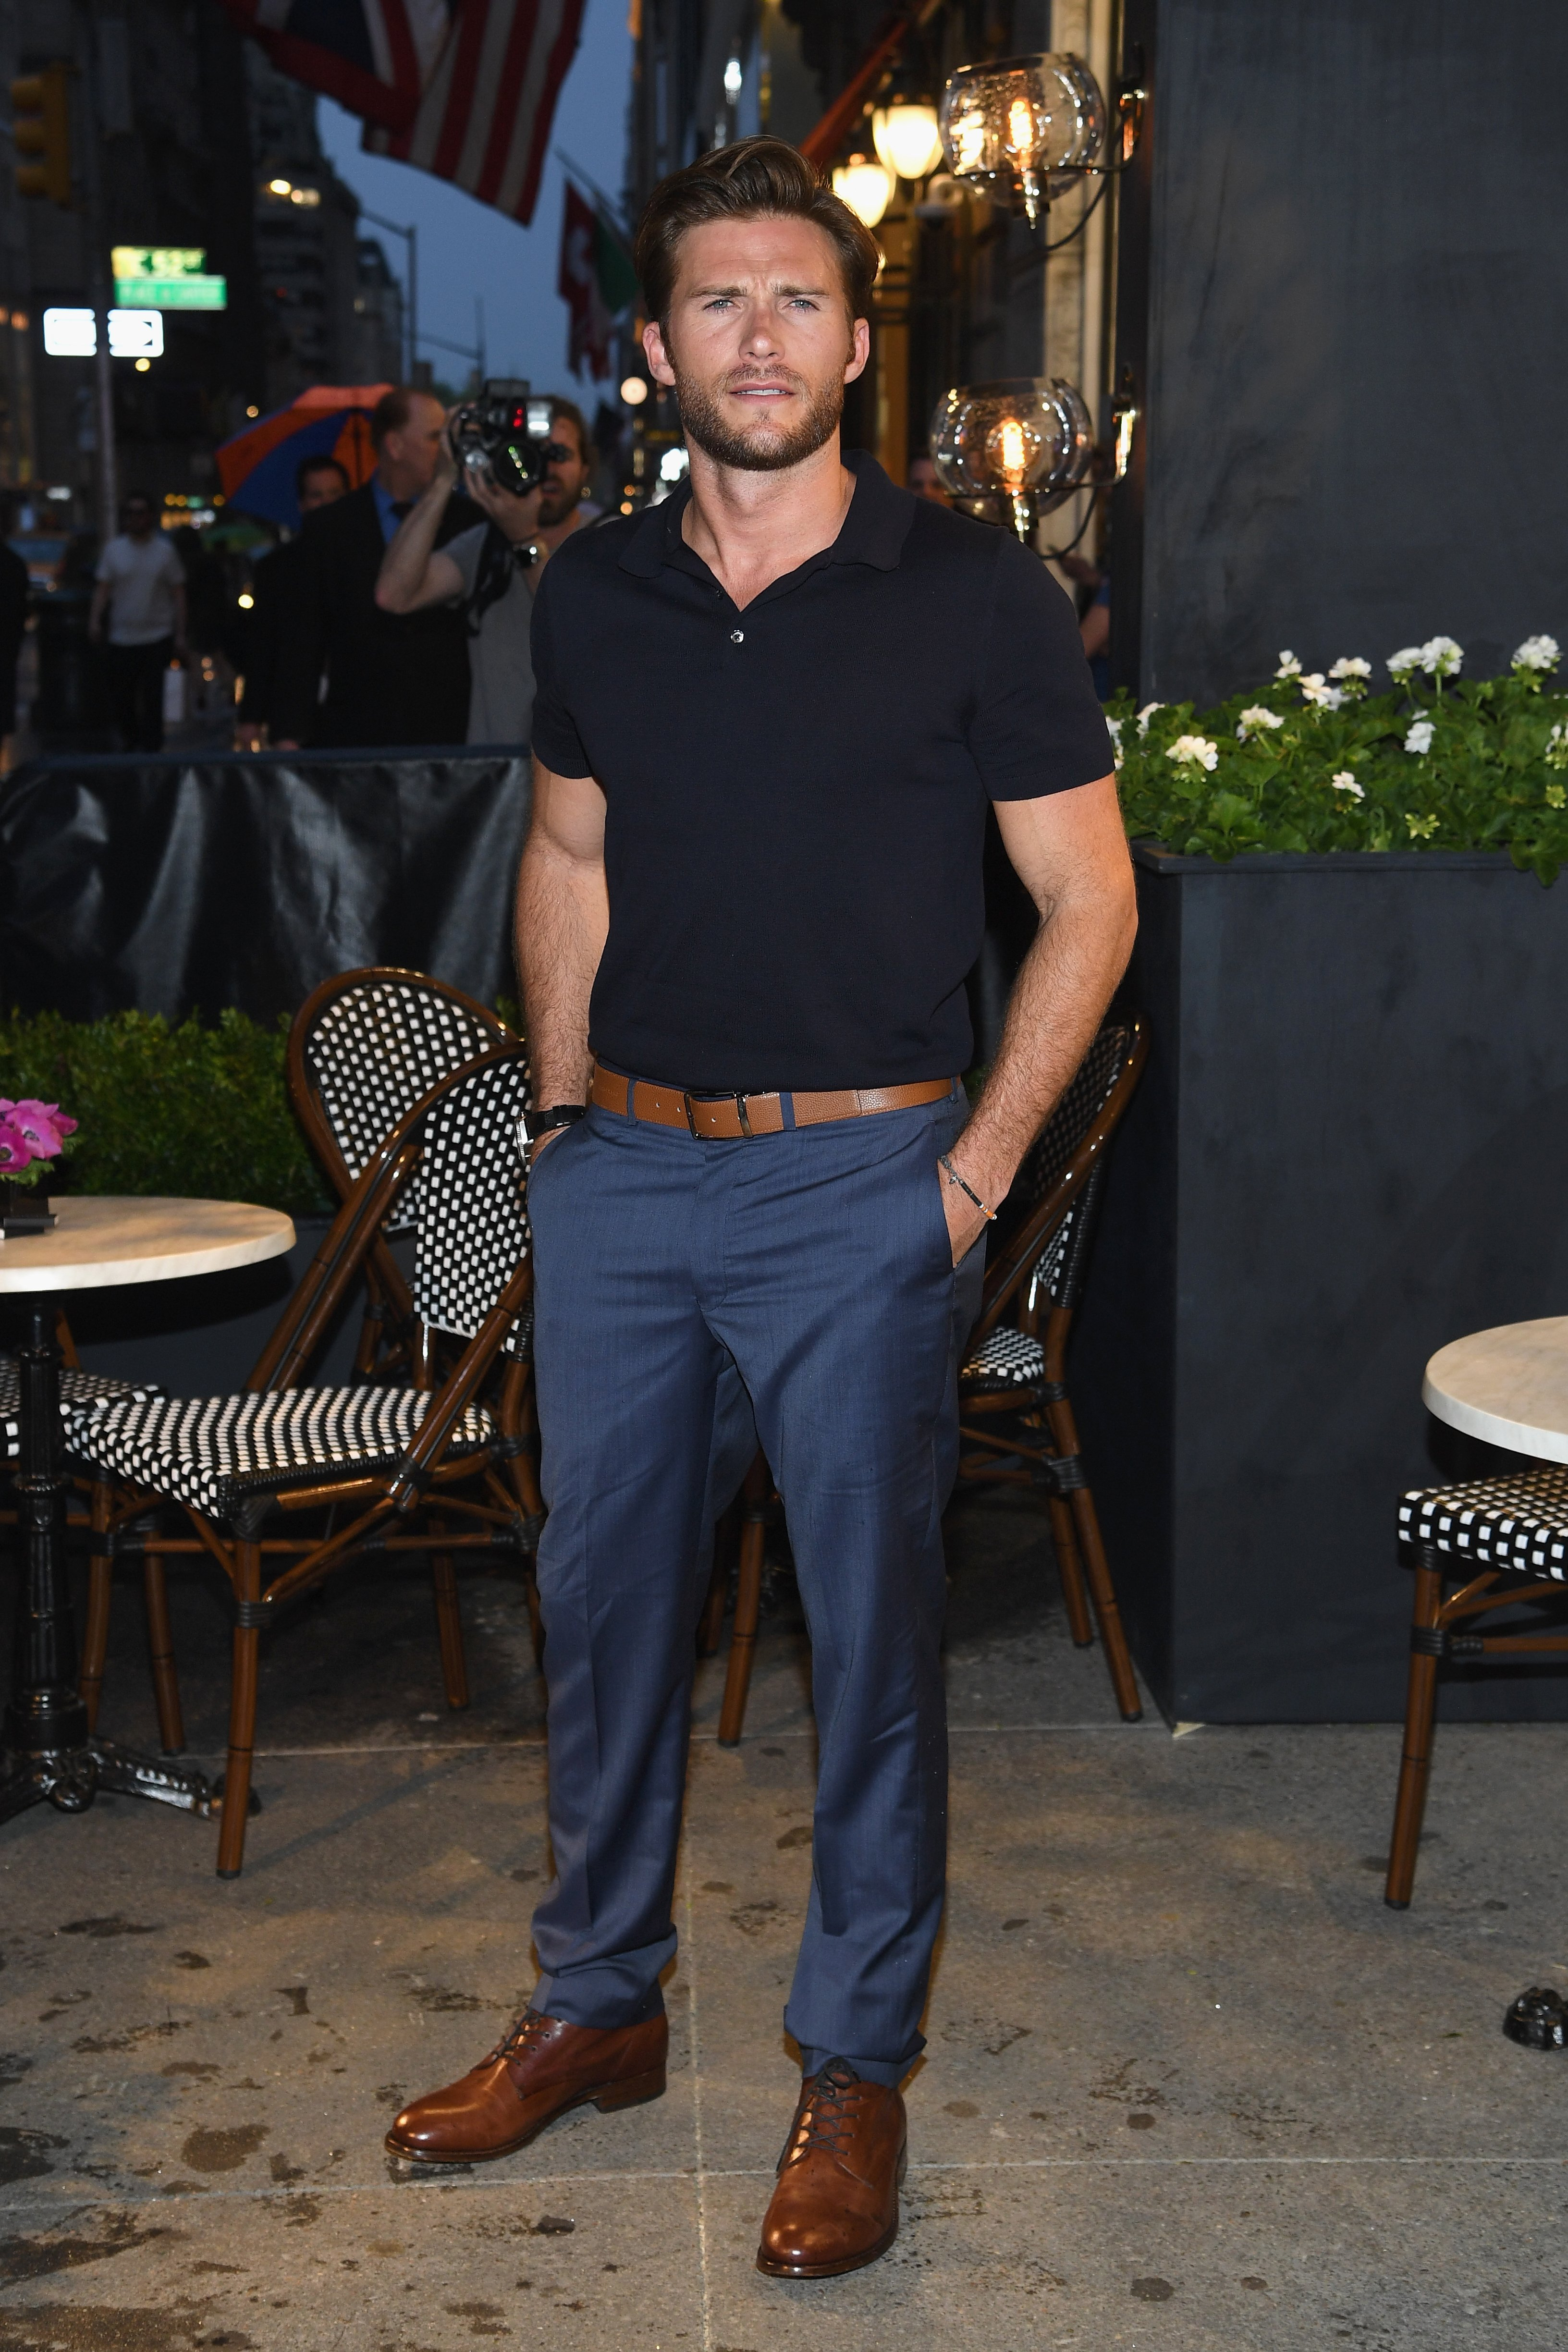 Scott Eastwood attends the Longchamp Opening at Longchamp Fifth Avenue on May 3, 2018 in New York City | Photo: Getty Images